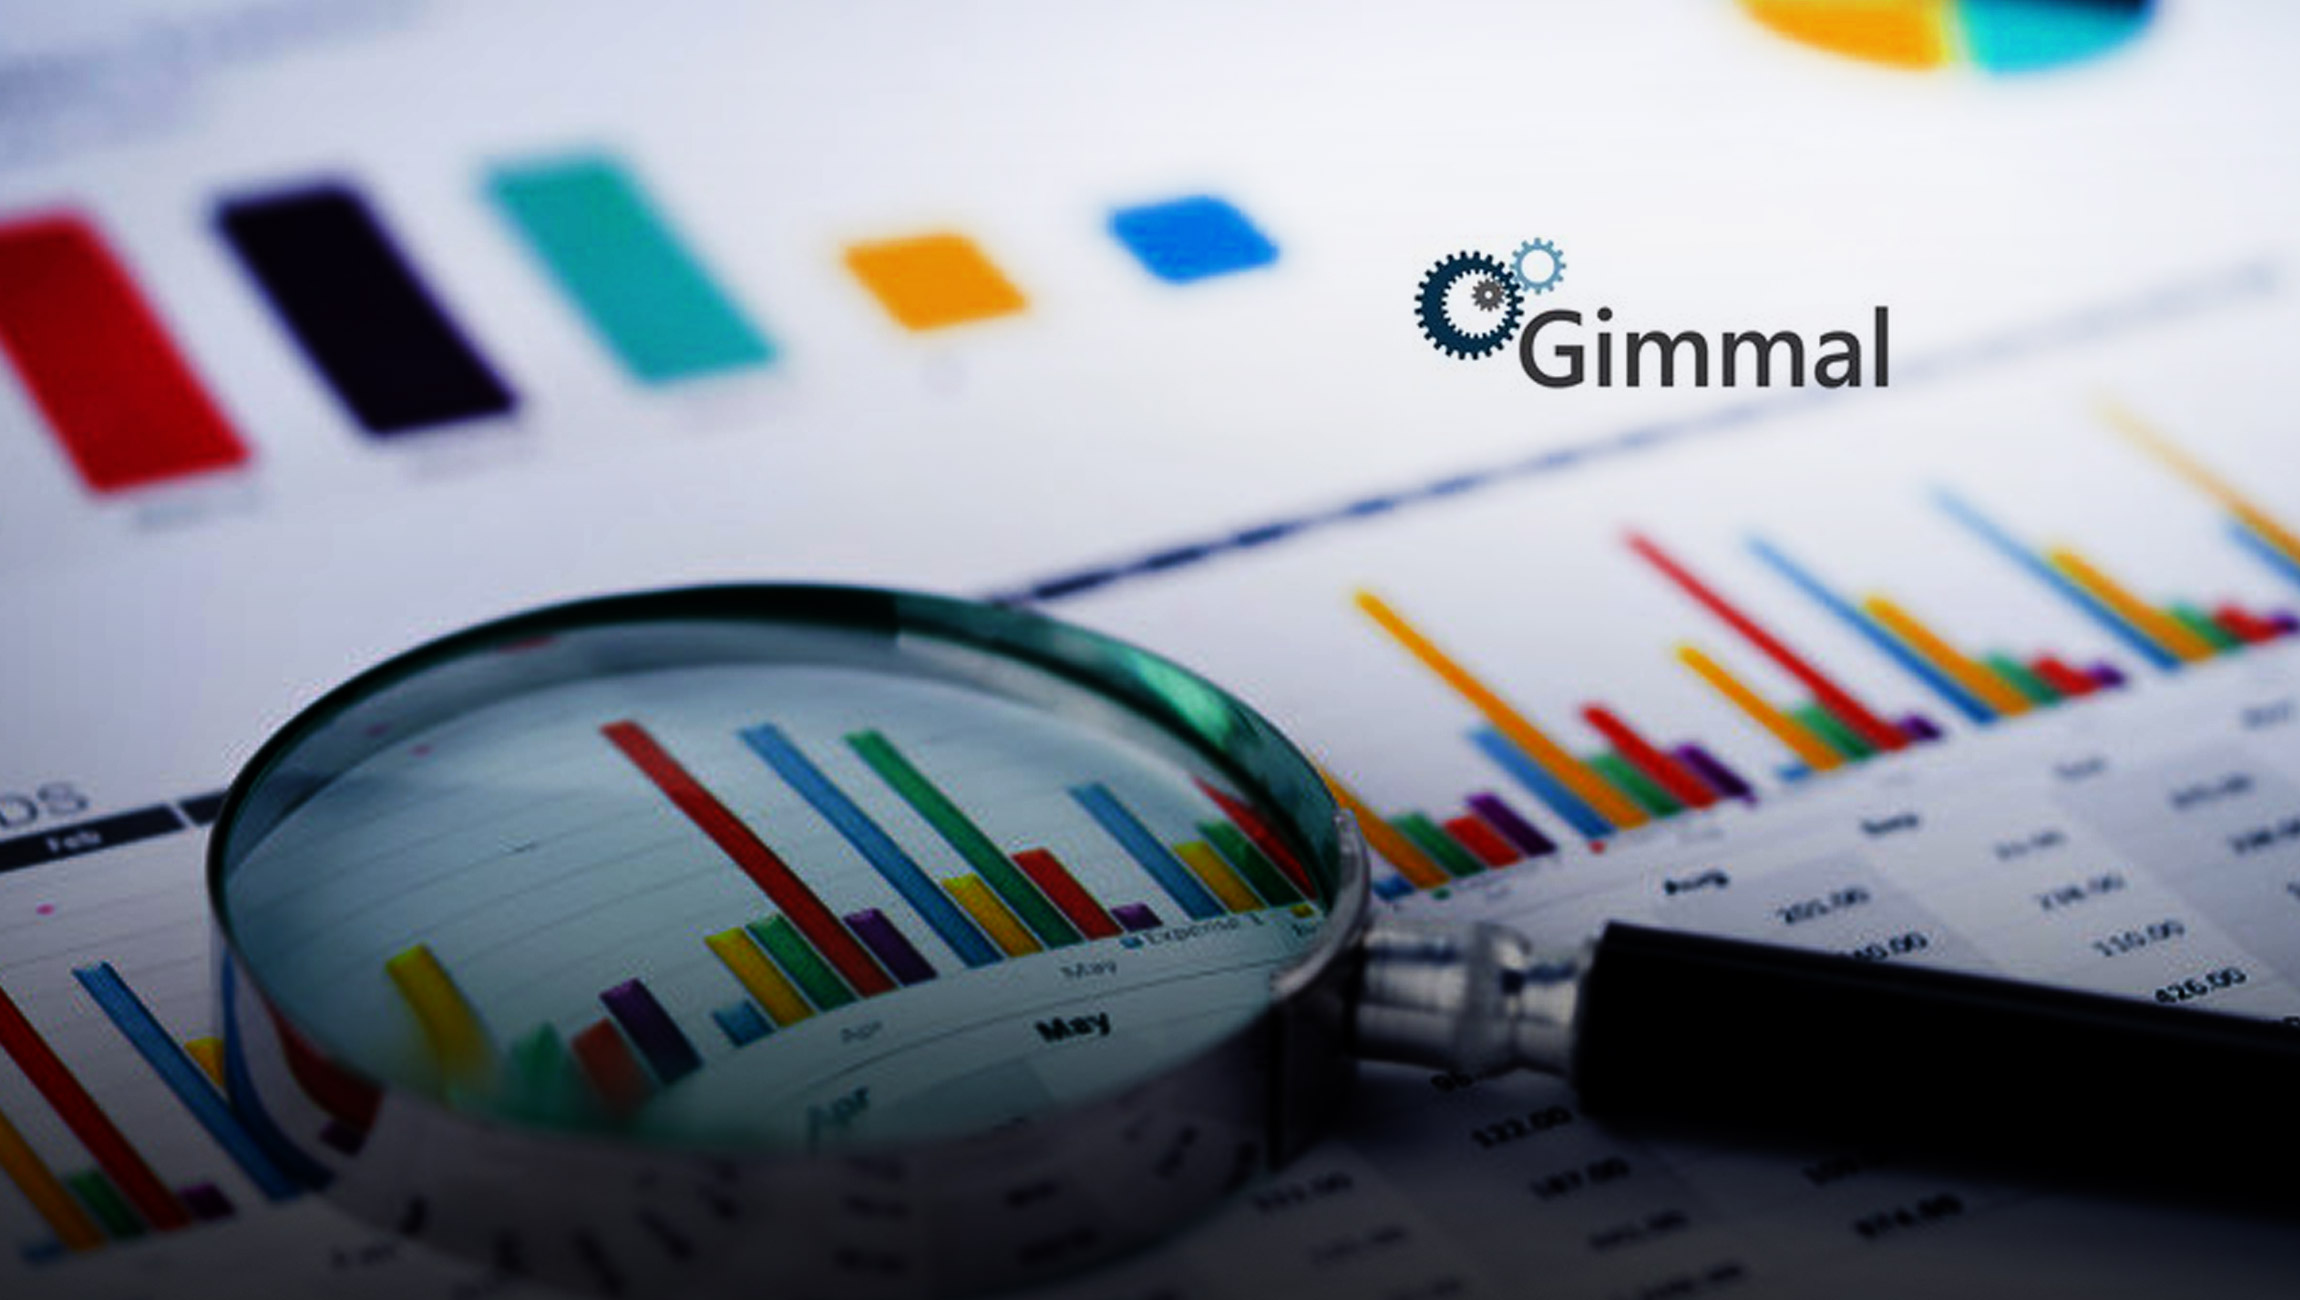 Gimmal Introduces File Analysis Solution for Unstructured Data